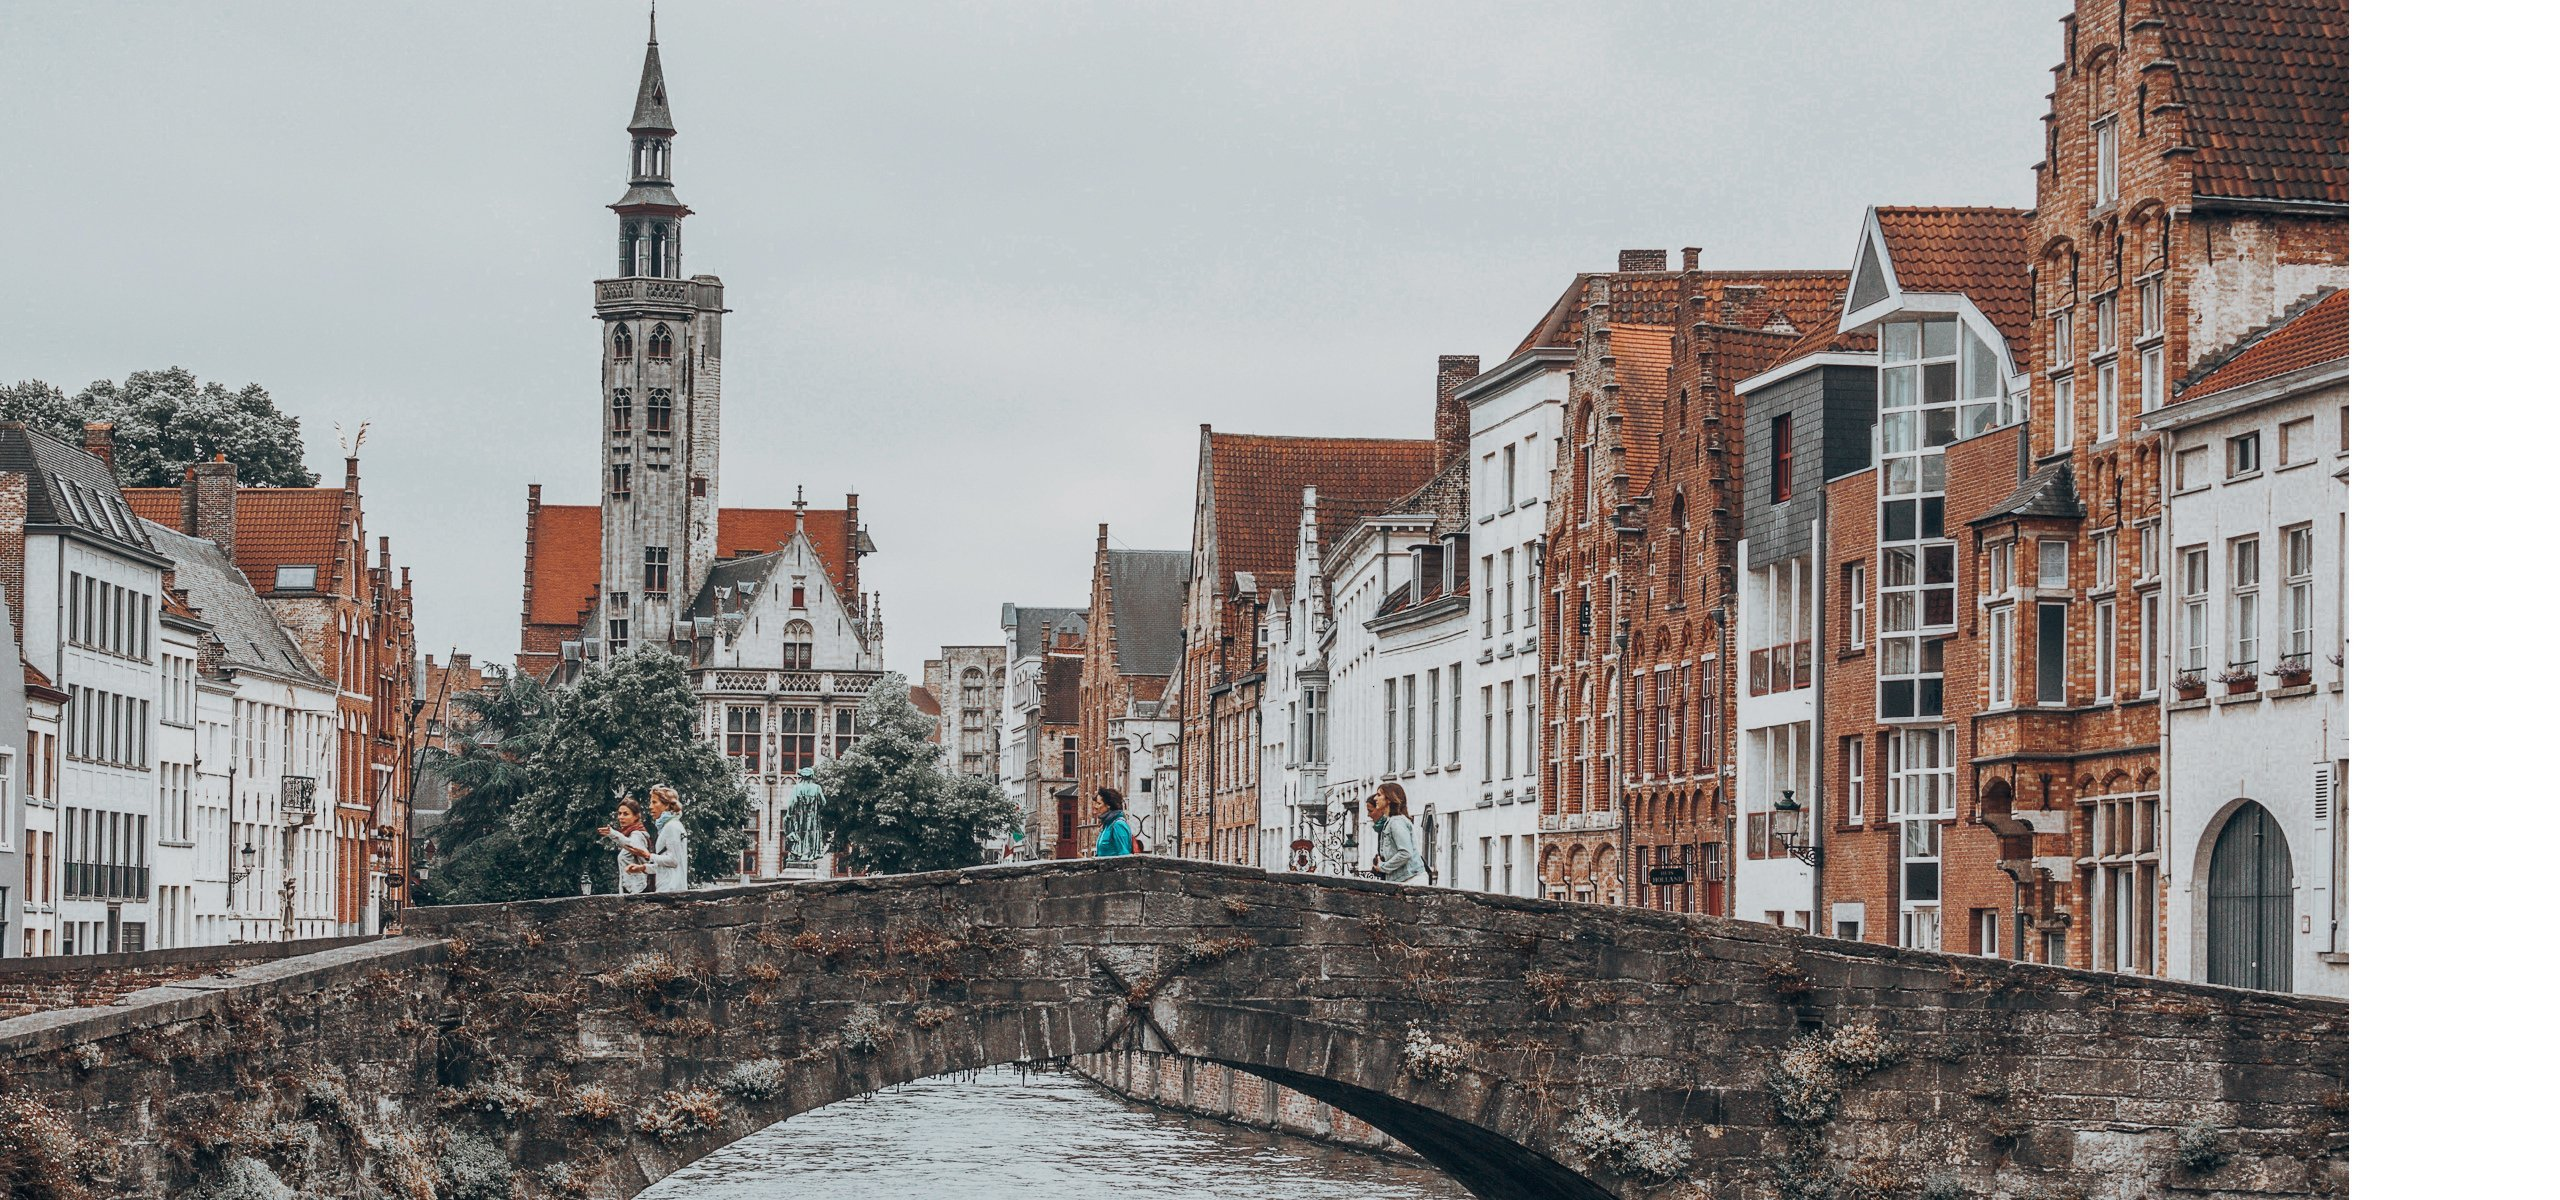 A Complete Guide To 24 Hours In Bruges